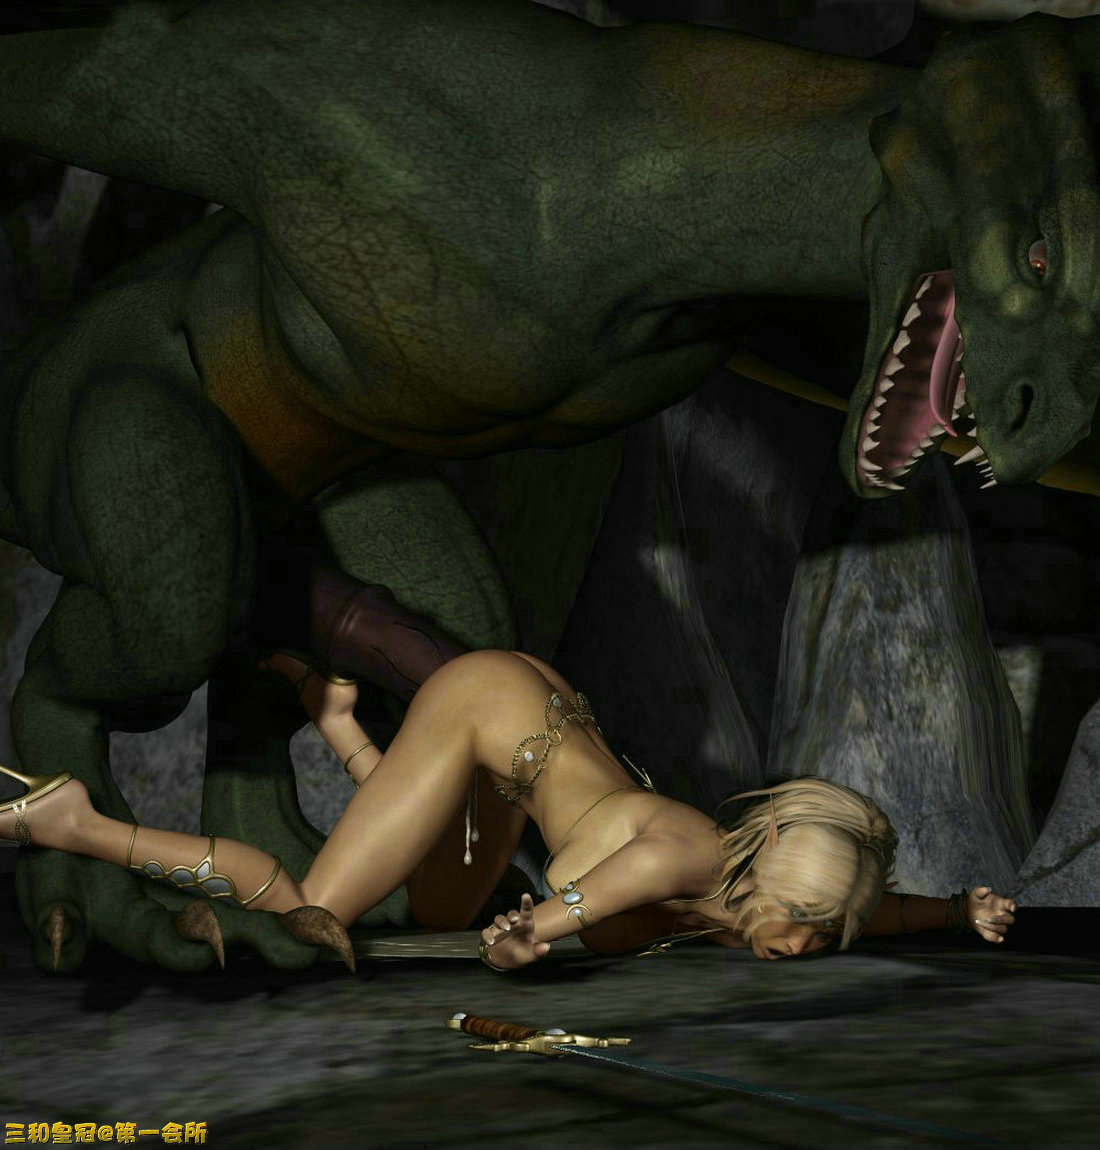 Dragon fucking girl sex girl 3d video erotic pictures